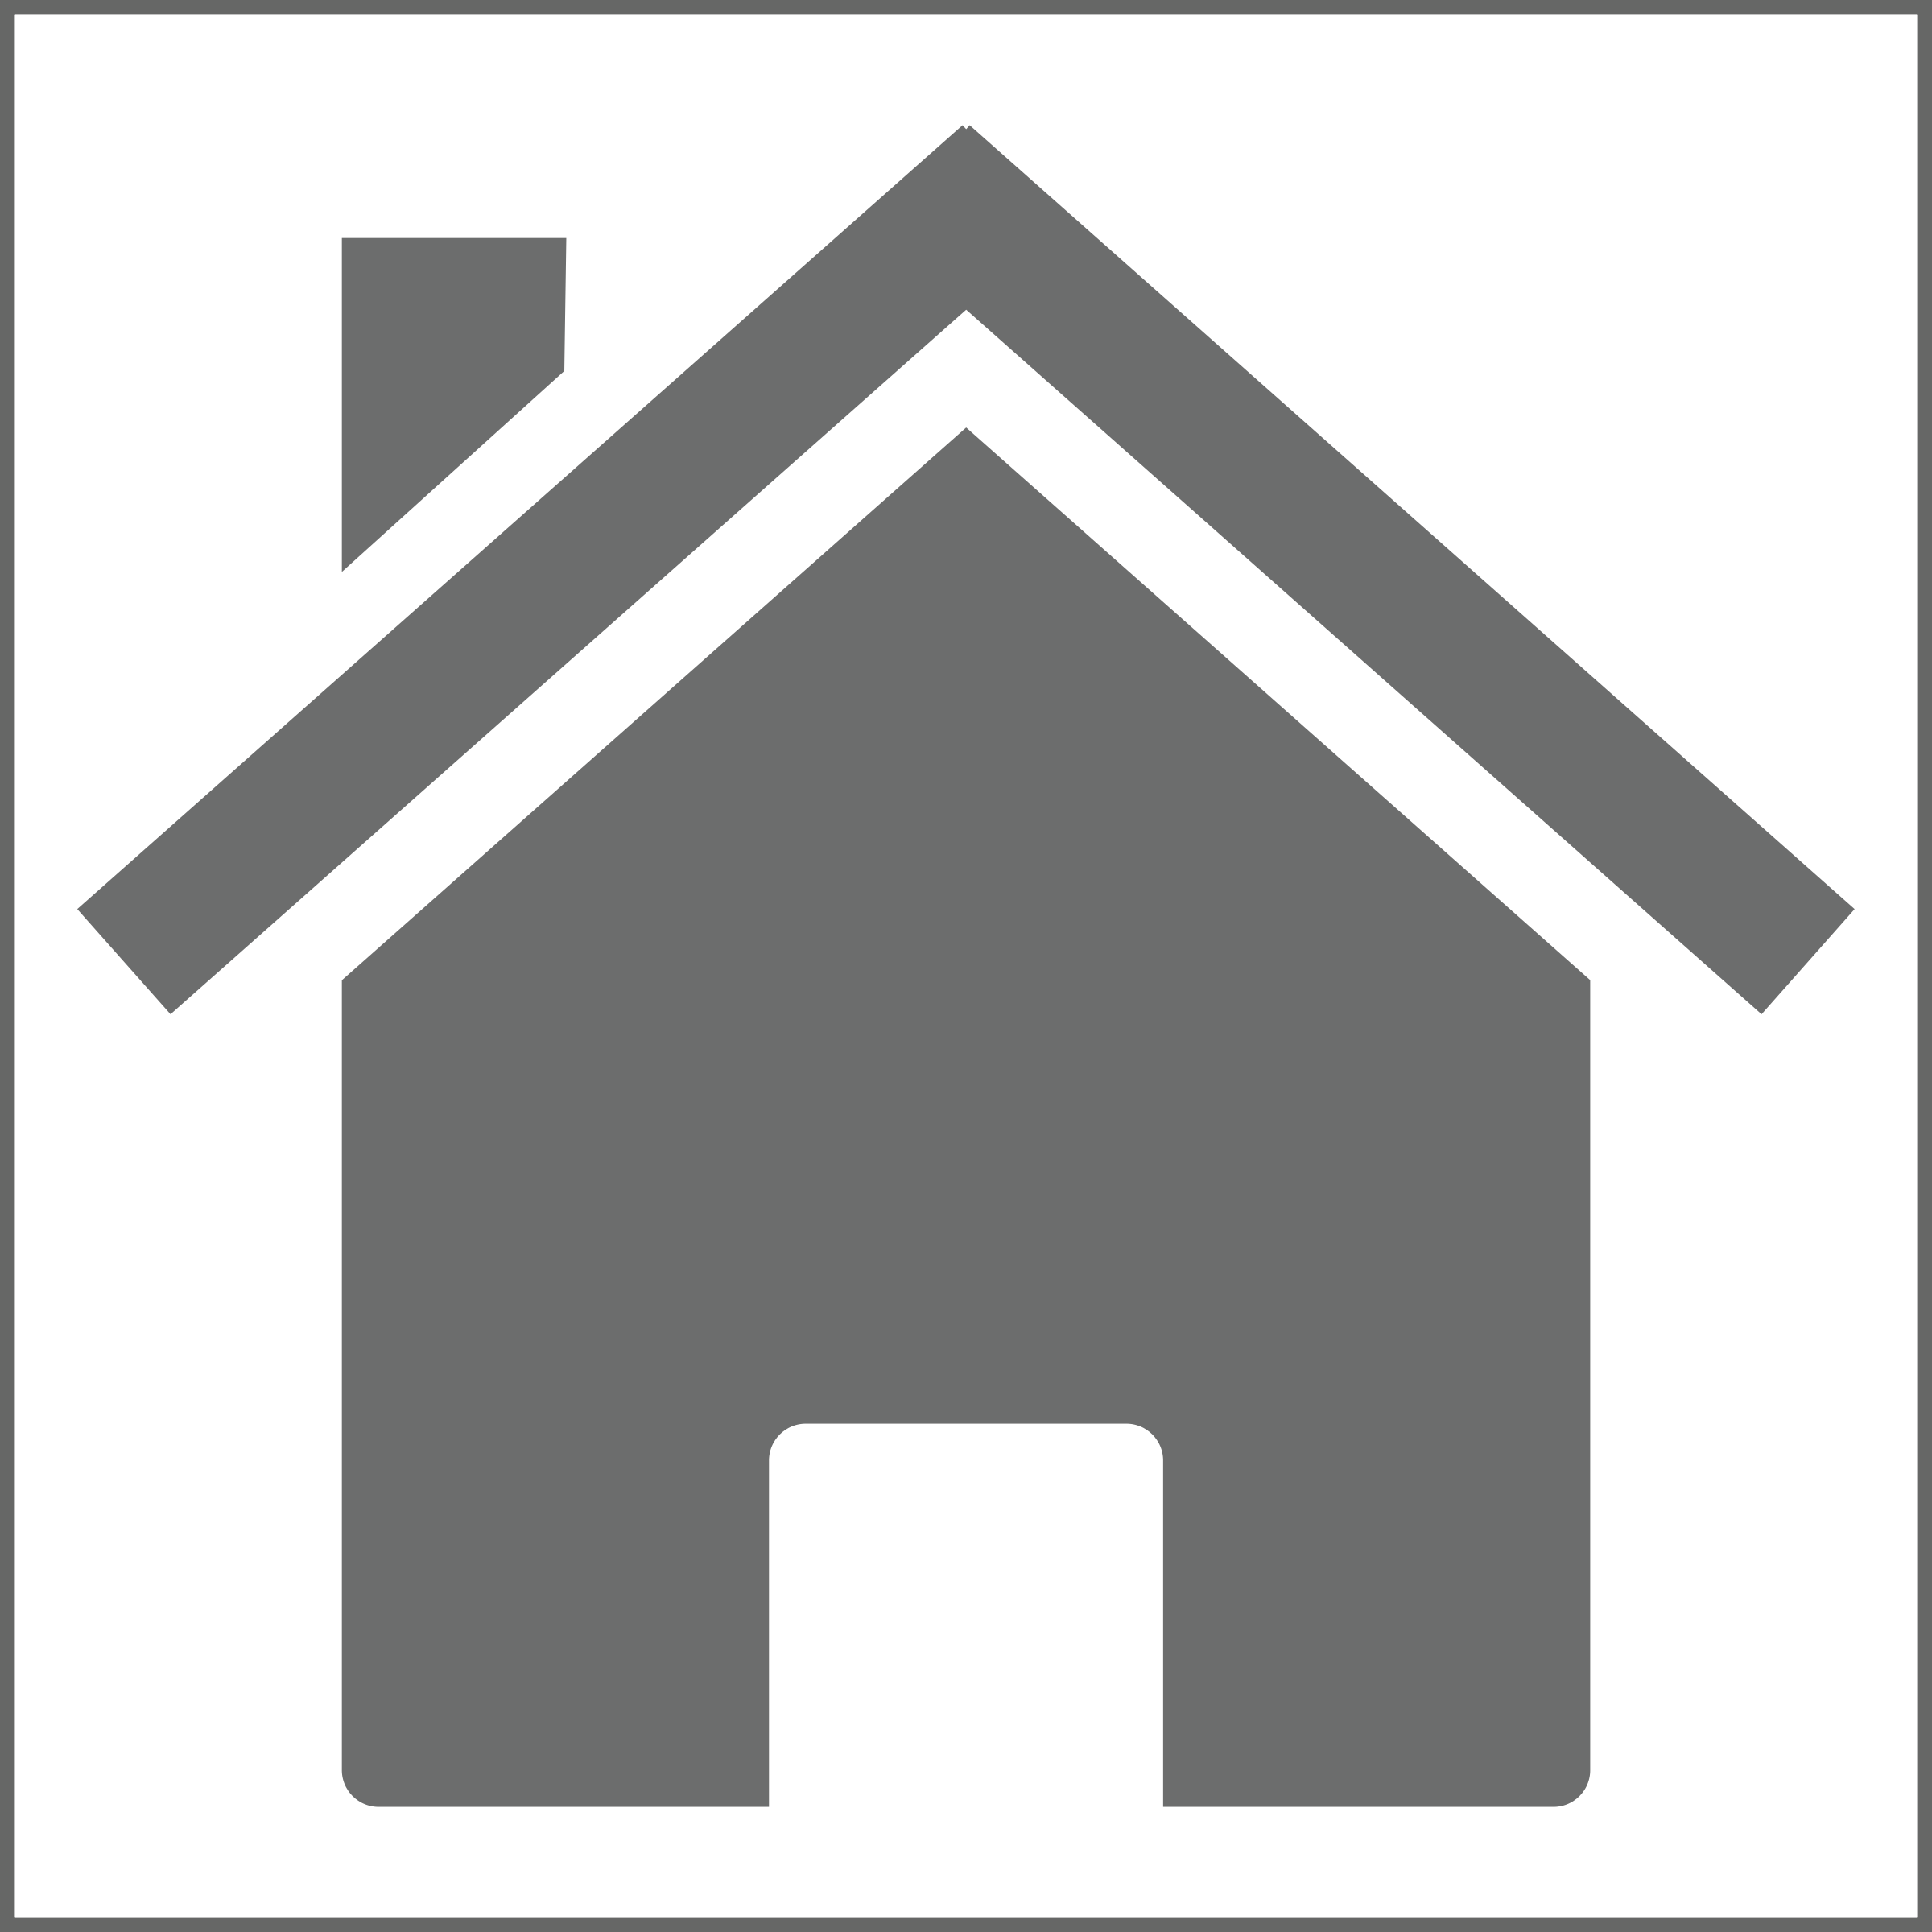 Icon: Grey on White Square - Variation of dynamitt home by mrjeremiahross